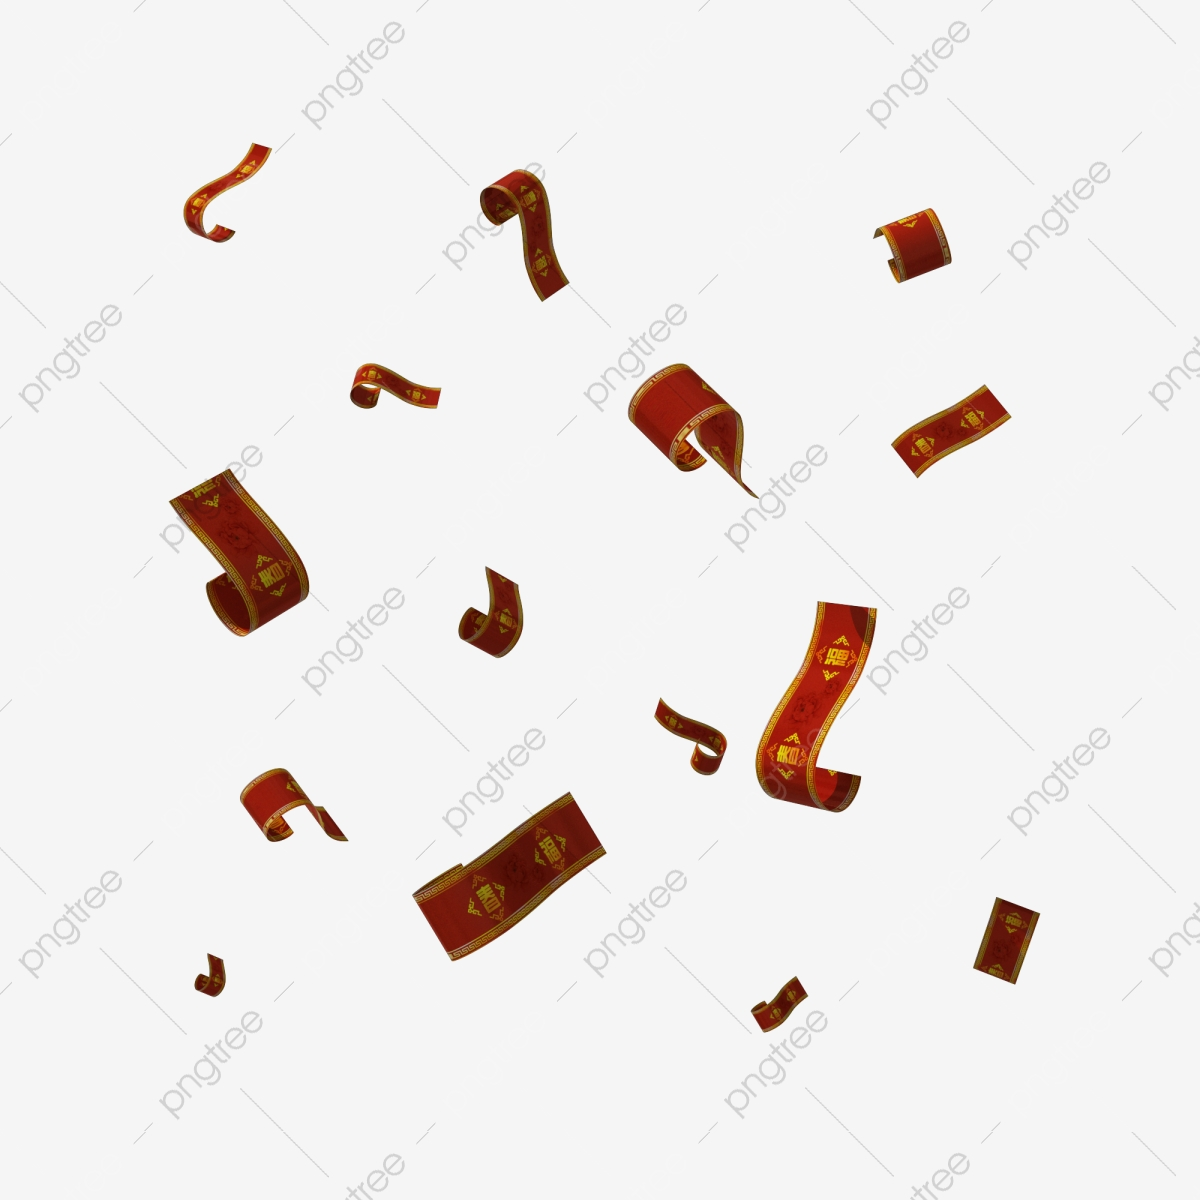 hight resolution of commercial use resource upgrade to premium plan and get license authorization upgradenow chinese new year firecrackers chinese clipart